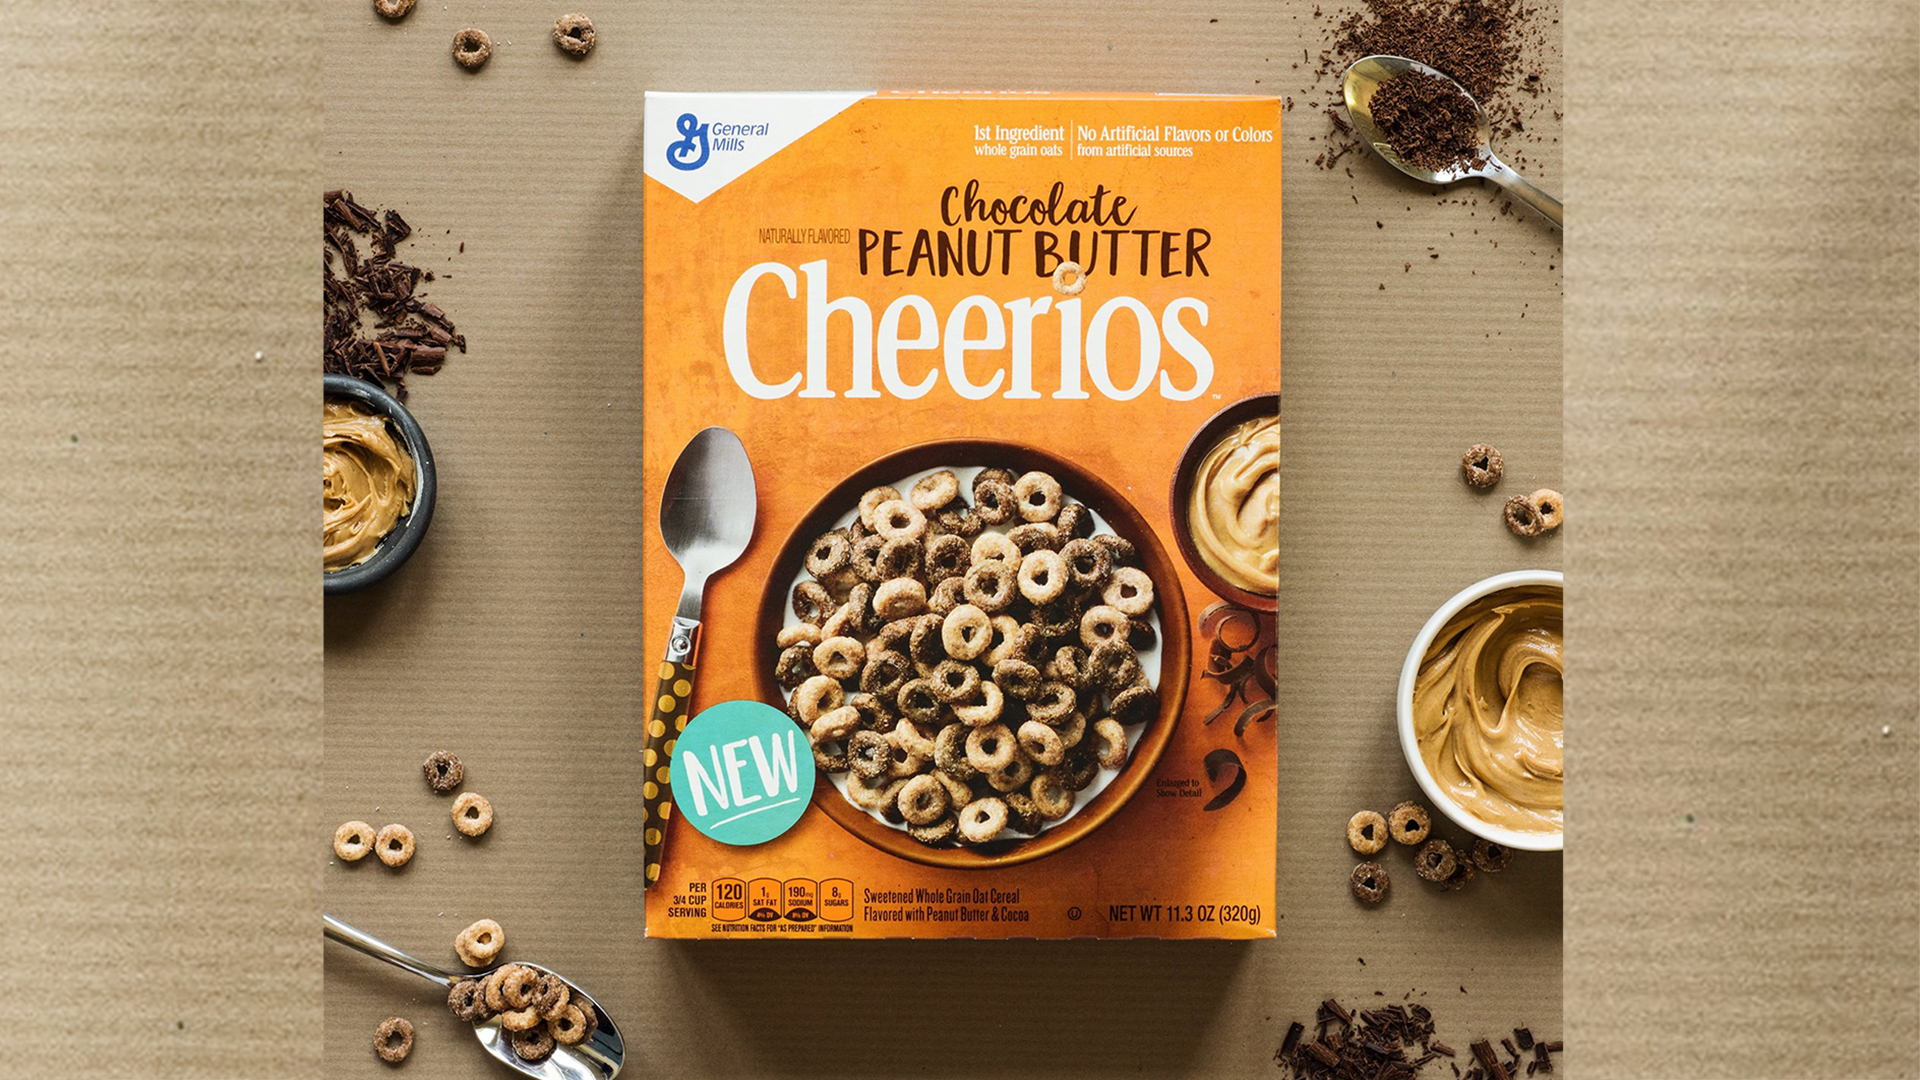 Love Reese's? Cheerios has a sweet new cereal flavor just for you